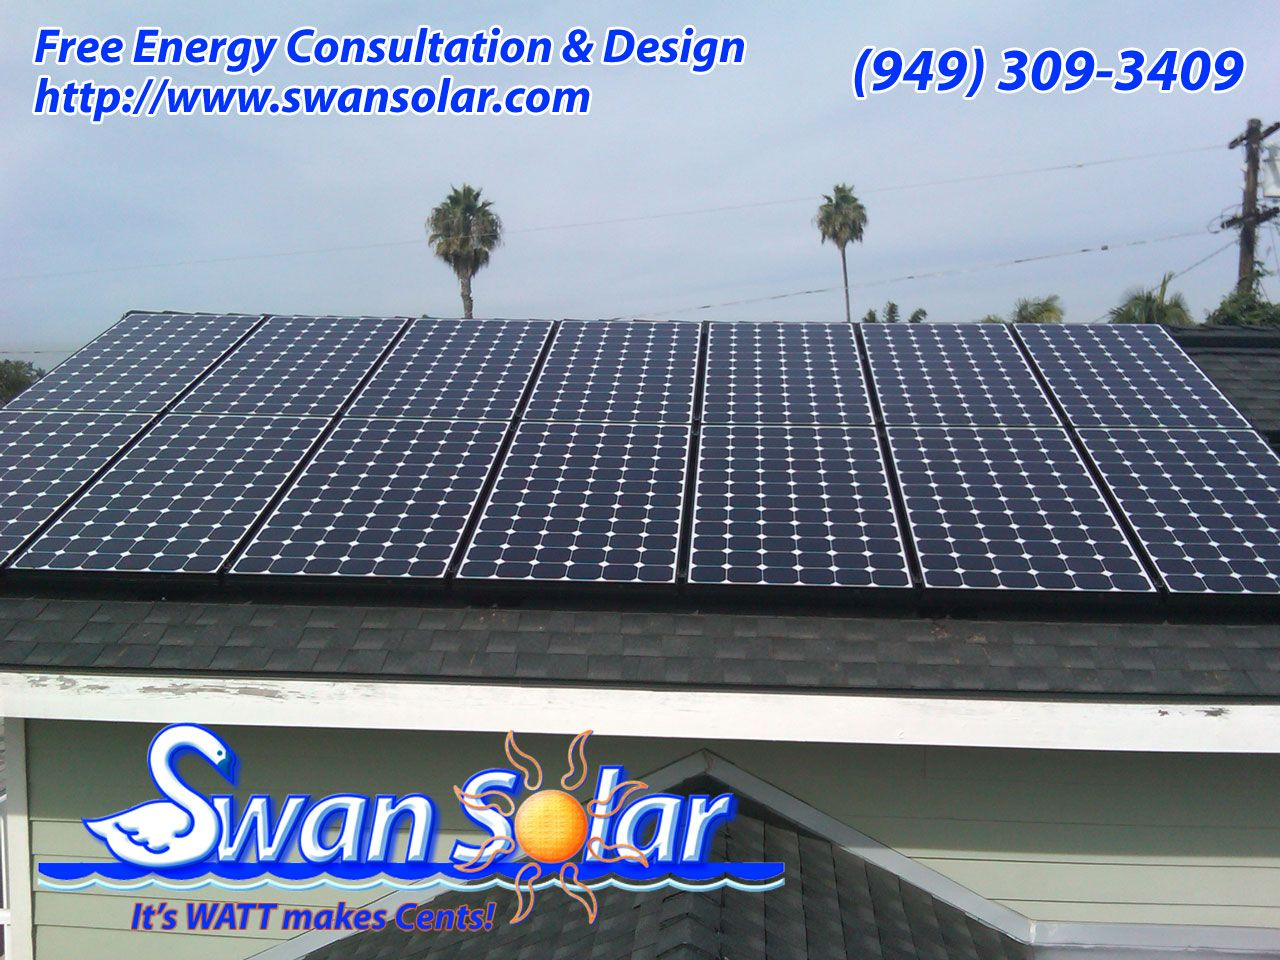 Solar Photovoltaic Systems Panels San Clemente Ca This Solar Photovoltaic System Has 14 Solar Panels With A 3000 Wa Solar Panels Solar Solar Panel Shingles